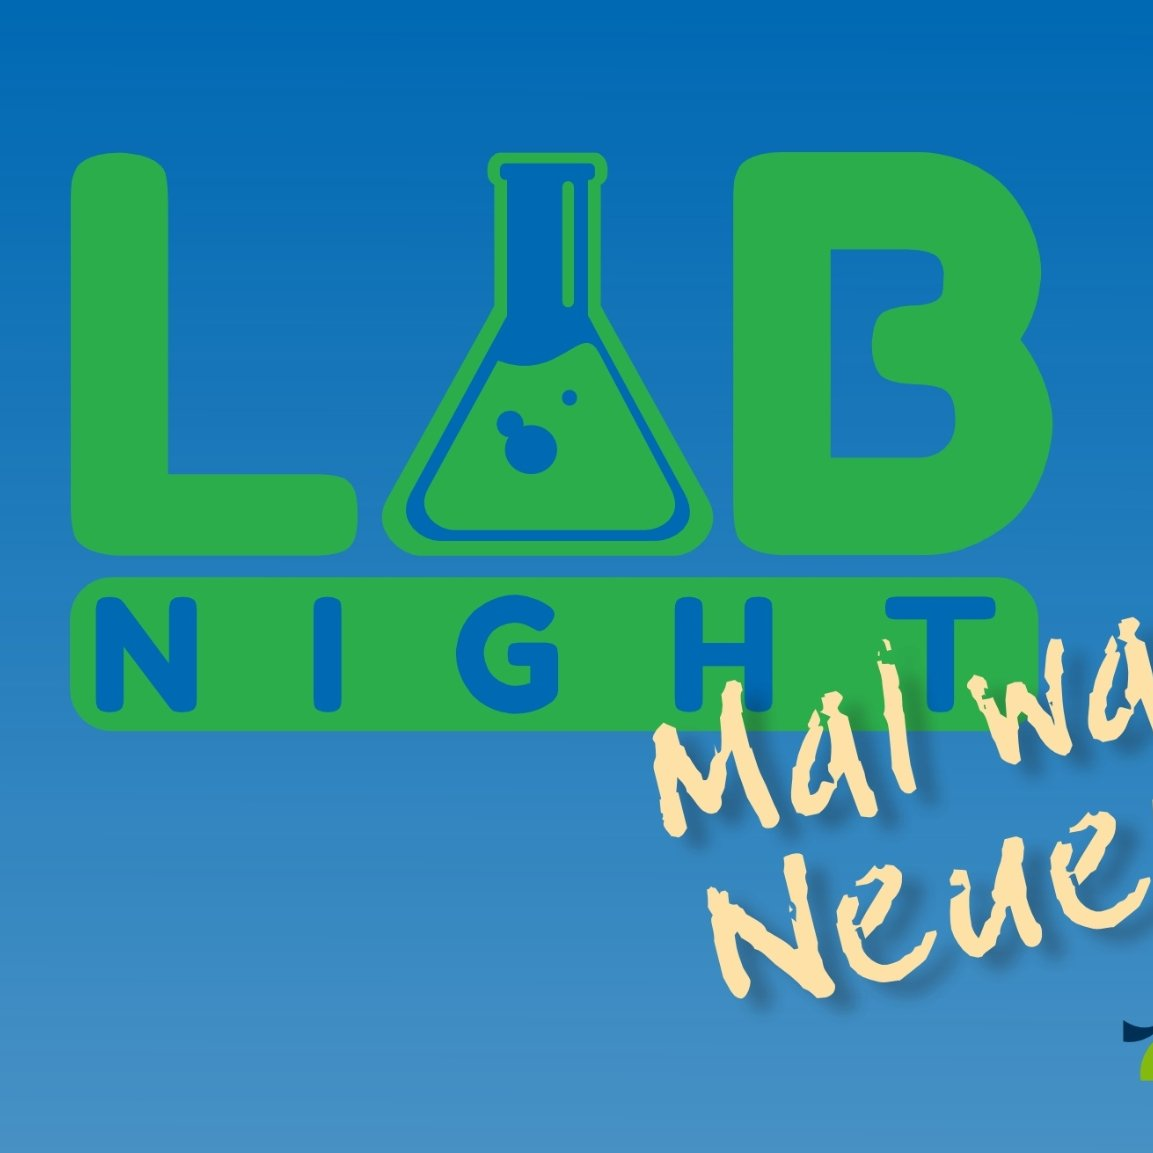 lab night flyer final vorne (c) Christian Stelljes